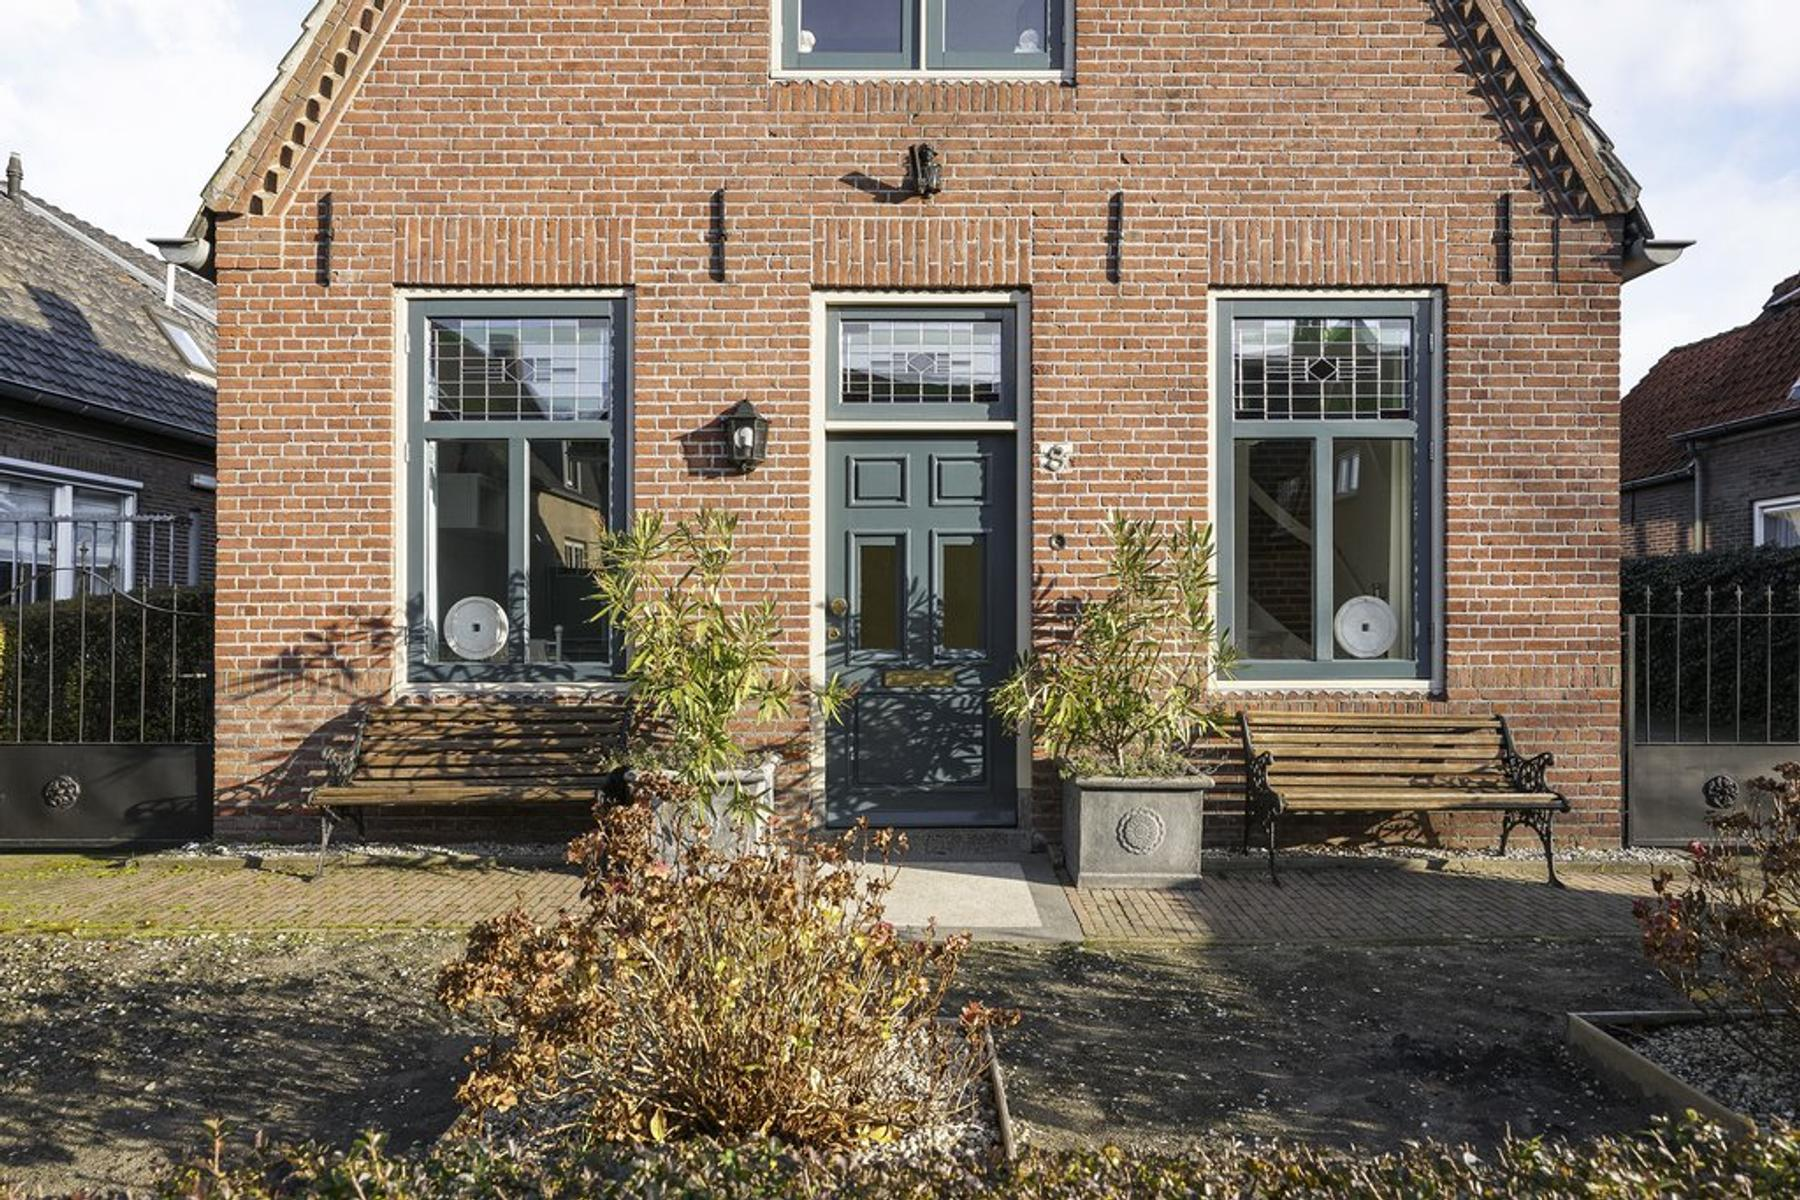 Meester Prinsenstraat 8 in Haarsteeg 5254 JC